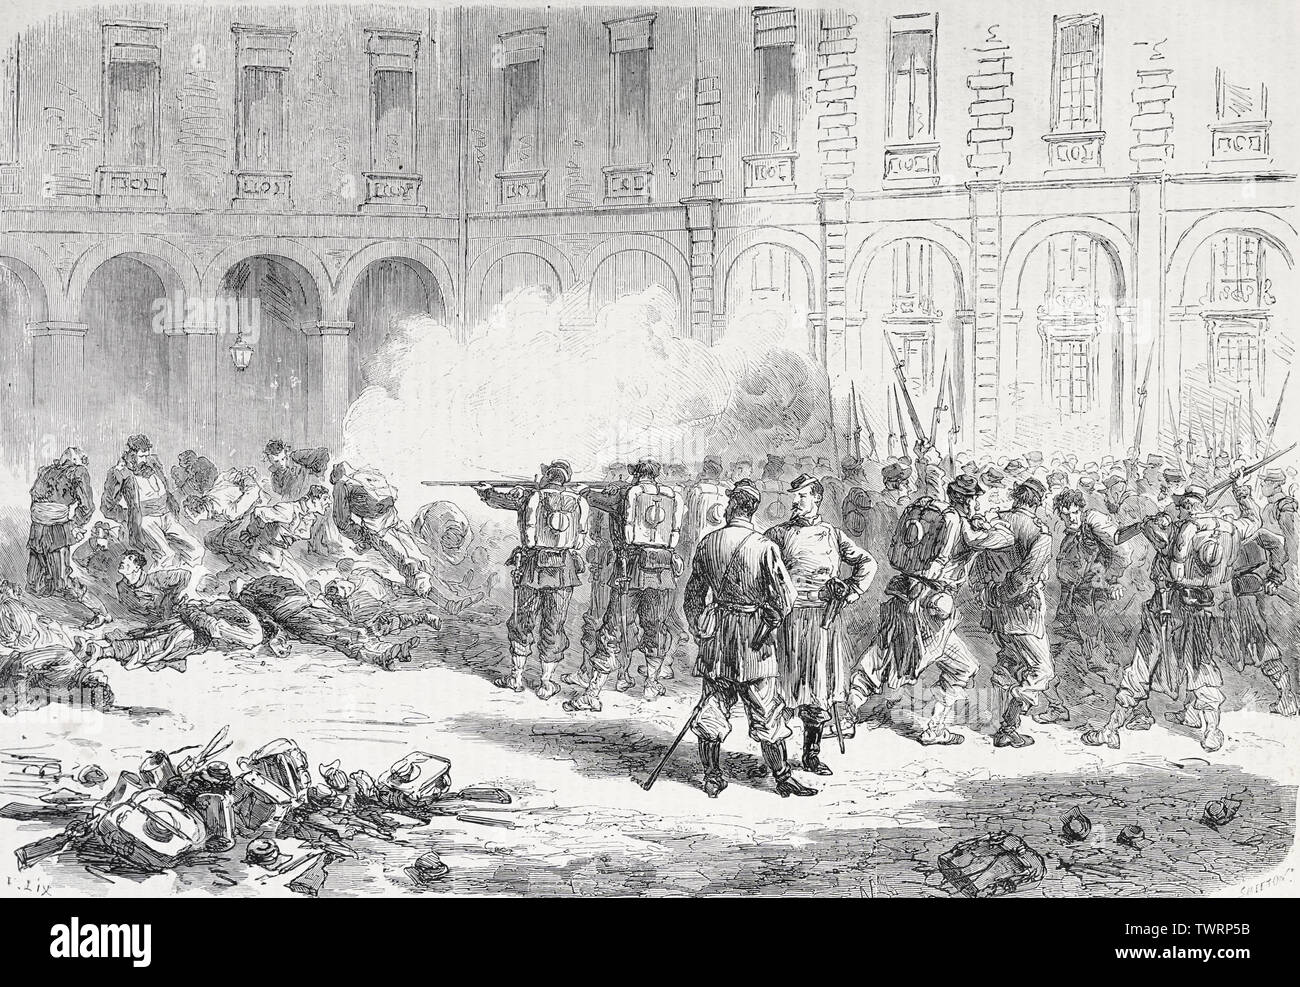 Execution of the insurgents taken at the Lobau Barracks during the Paris Commune, 1871 Stock Photo